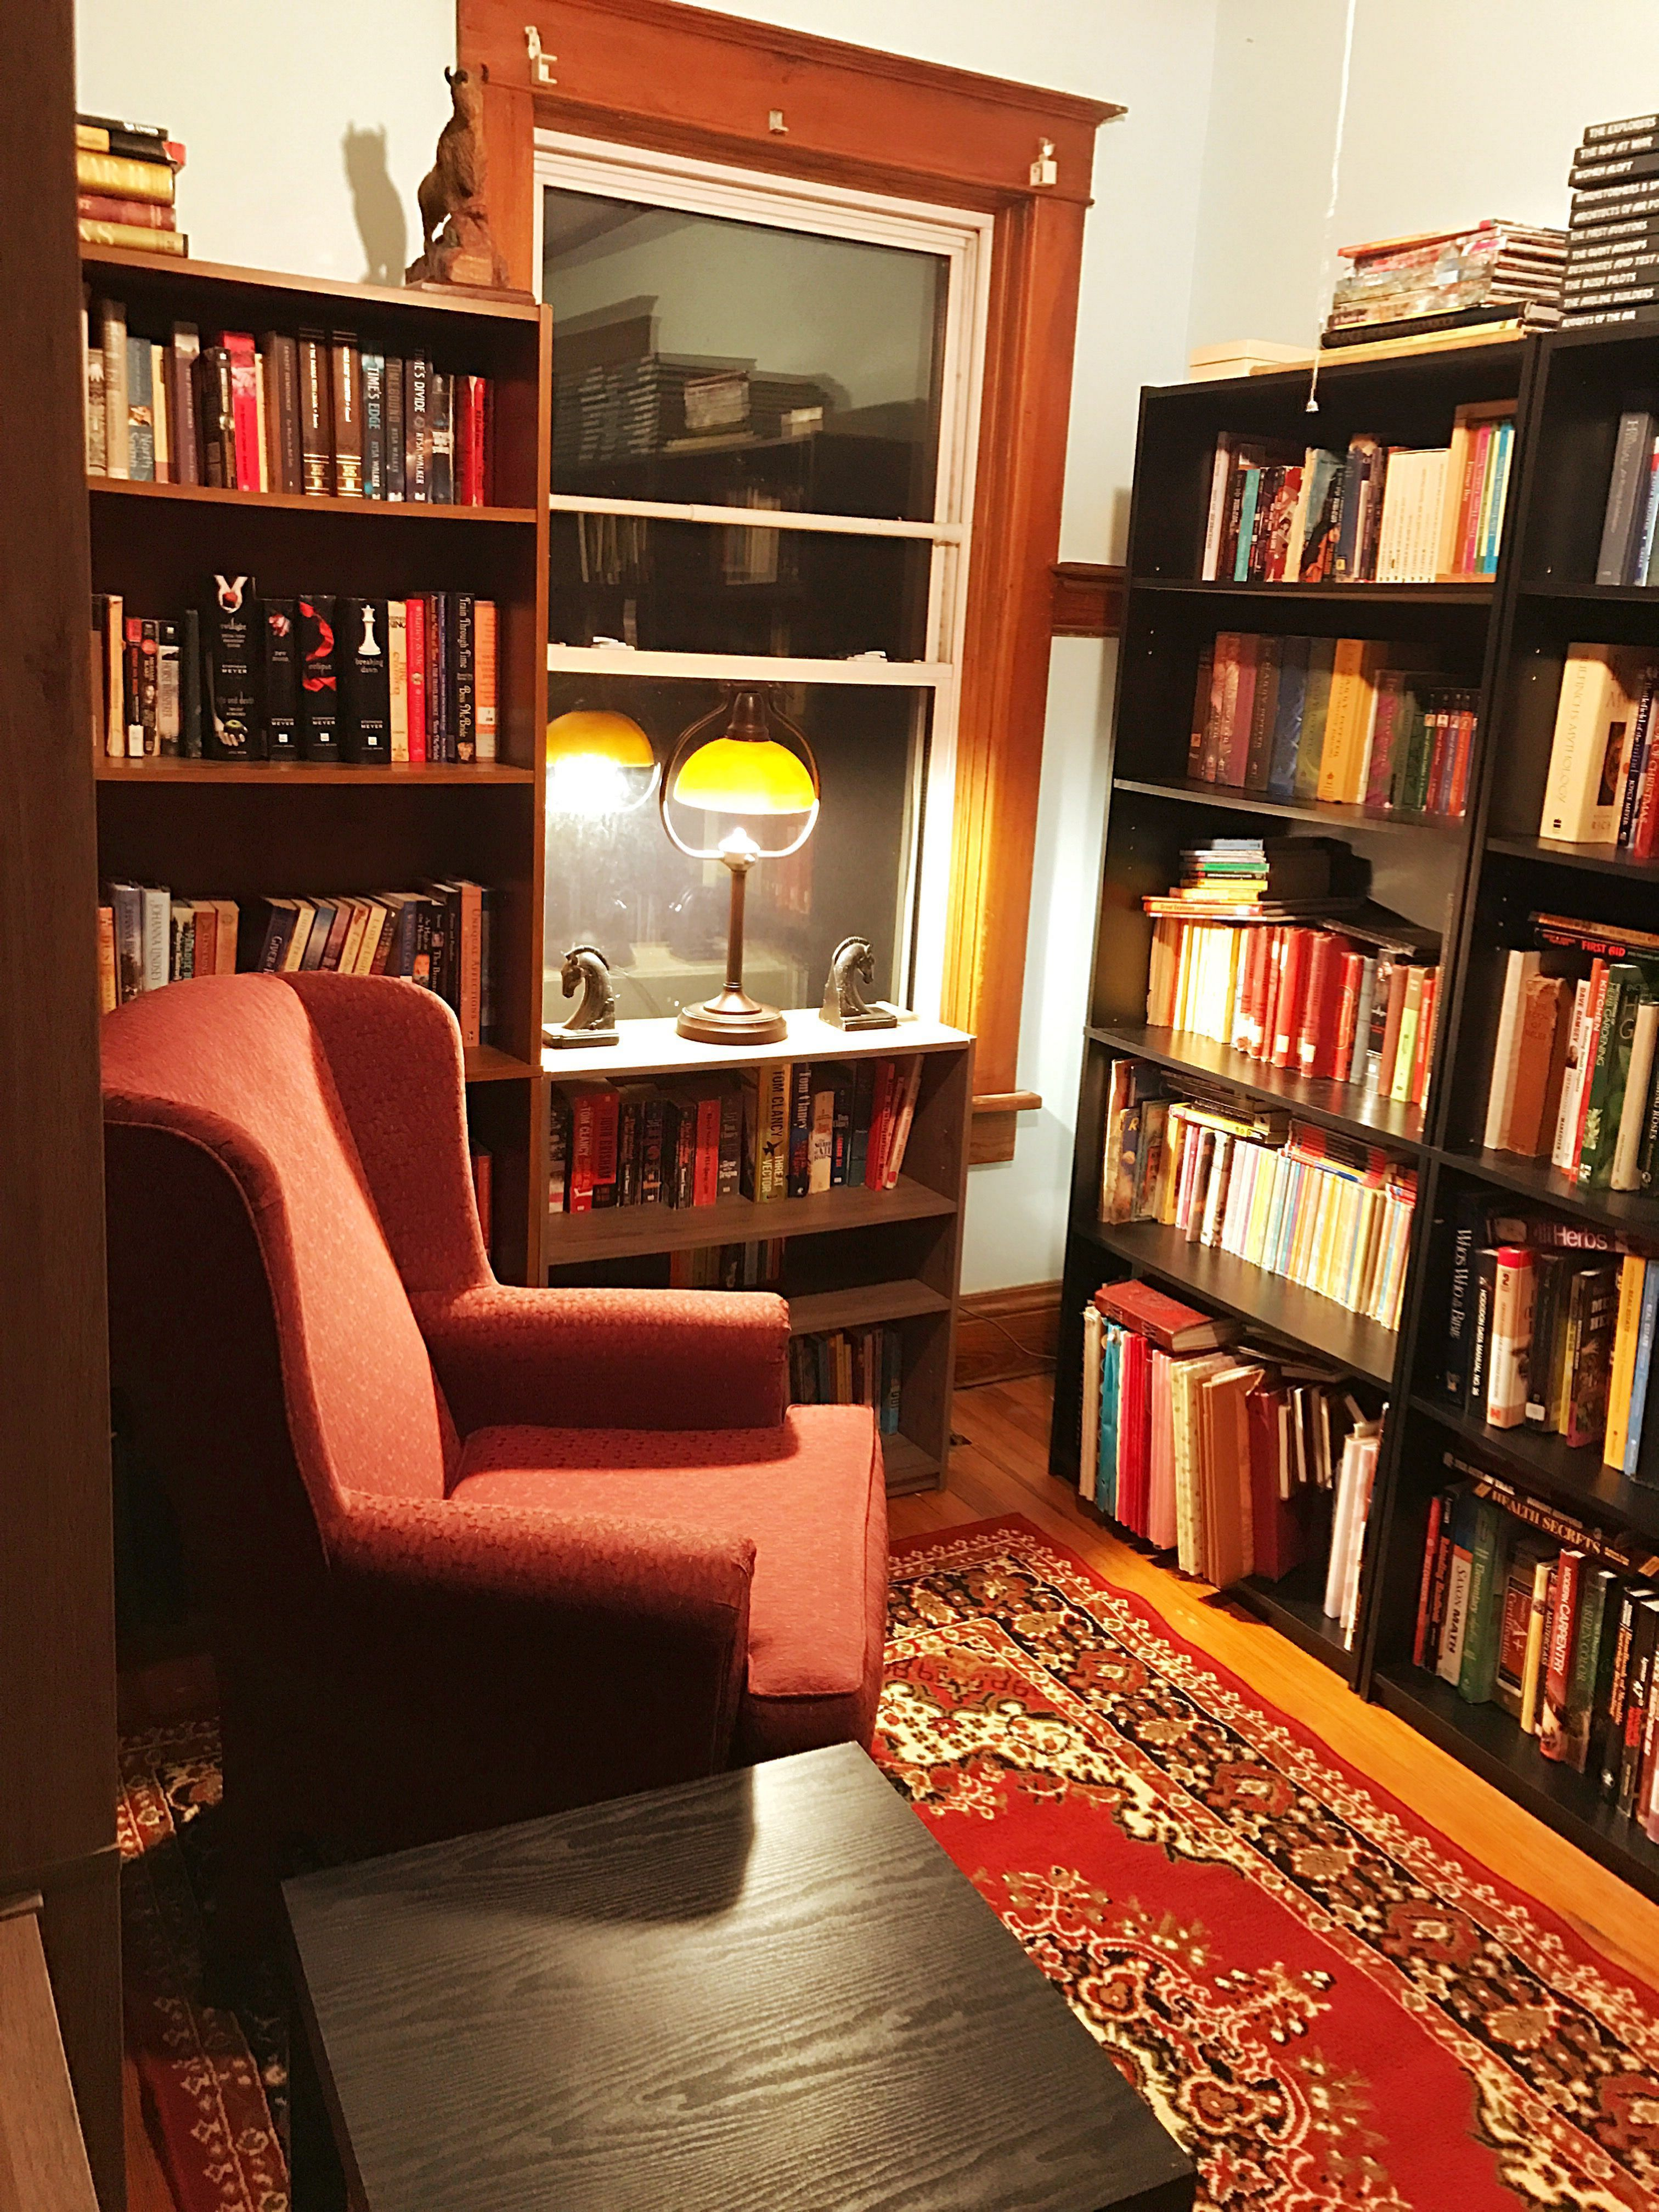 25 Cozy Small Home Library Design Ideas That Will Blow Your Mind